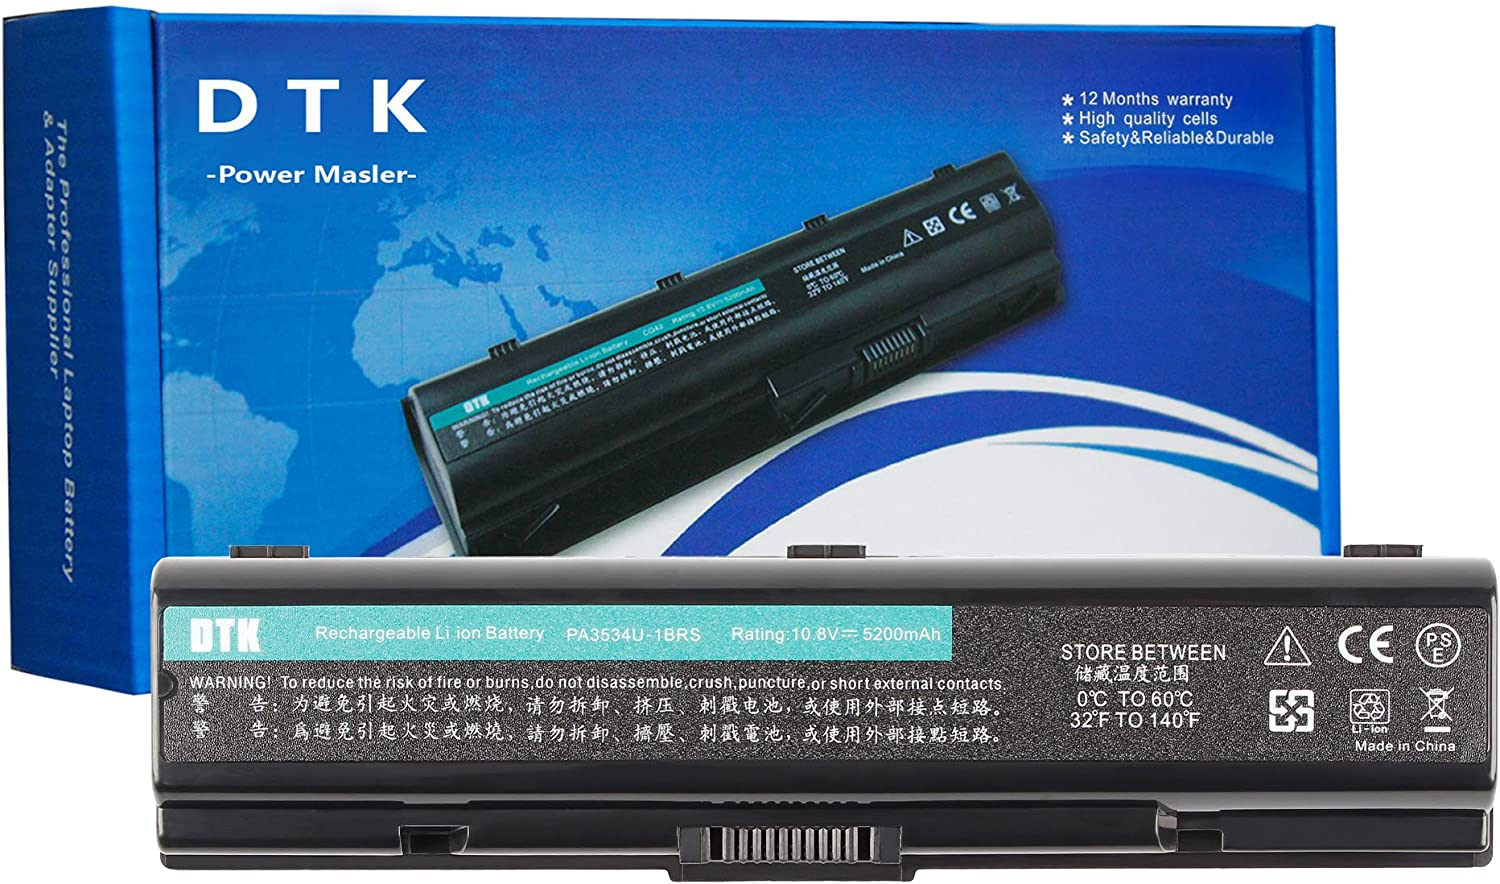 Dtk Laptop Battery for Toshiba Pa3534u-1brs Pa3533u-1brs Pa3535-1bas Satellite A200 A205 A210 A215 A300 A305 A350 A355 A500 A505 L200 L201 L202 L203 L205 Satellite Pro P300 Notebook Battery